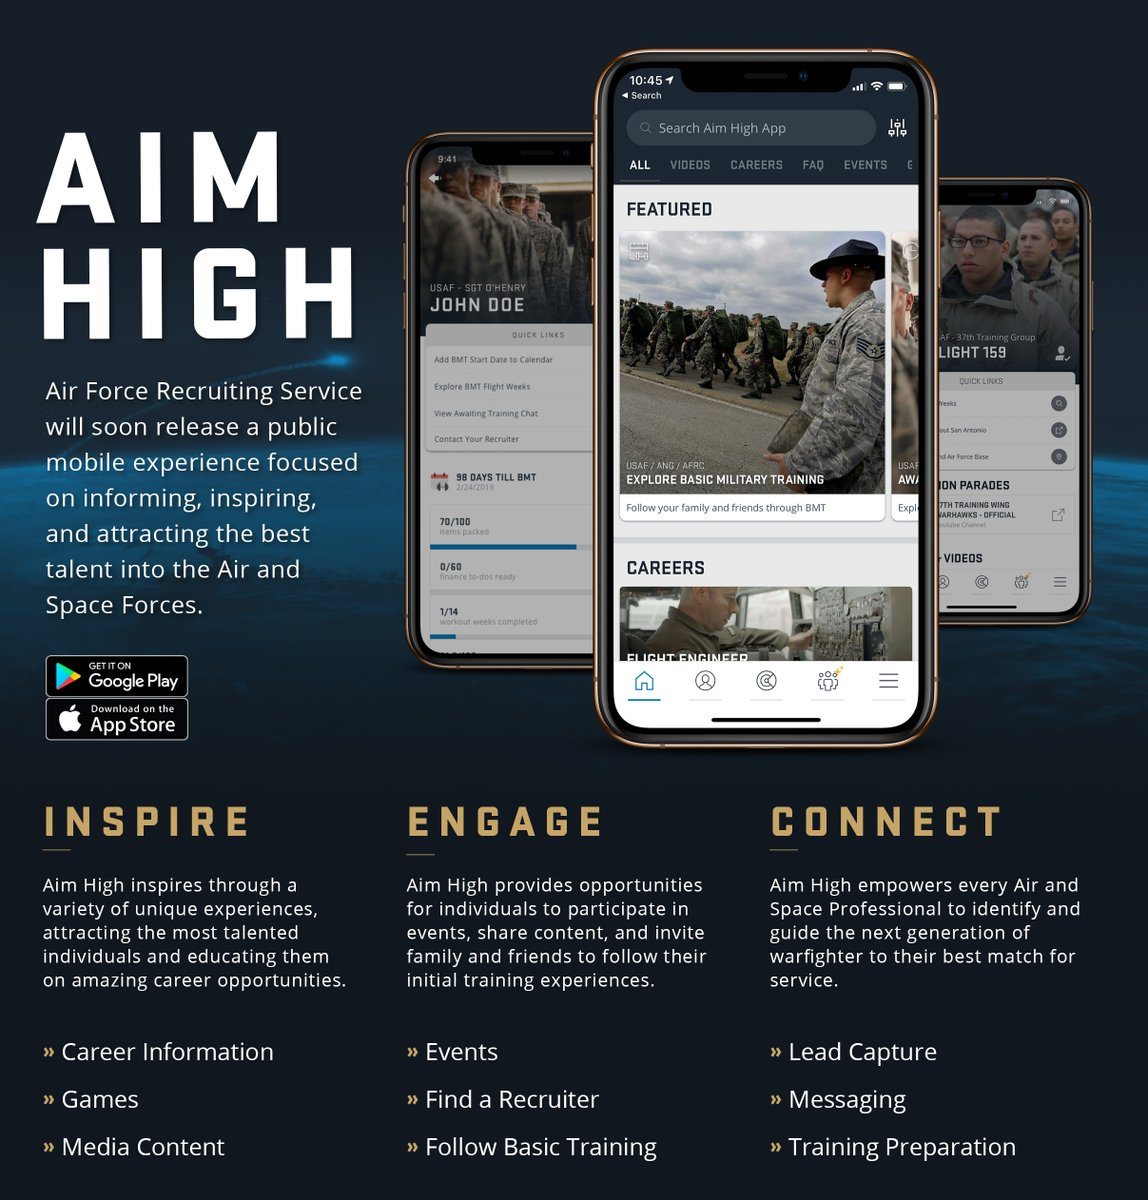 Interested in serving in the United States Air Force? Check out the Aim High App!  #InspireAF #AimHigh #USAF #AirForce #KnowYourMil #FlyFightWin #pilot #aviator #avgeek #aviation #aviationenthusiast #aviationlovers  @usairforce @USAFRecruiting @DeptofDefense @AETCommand https://t.co/LPoEuKHL8C